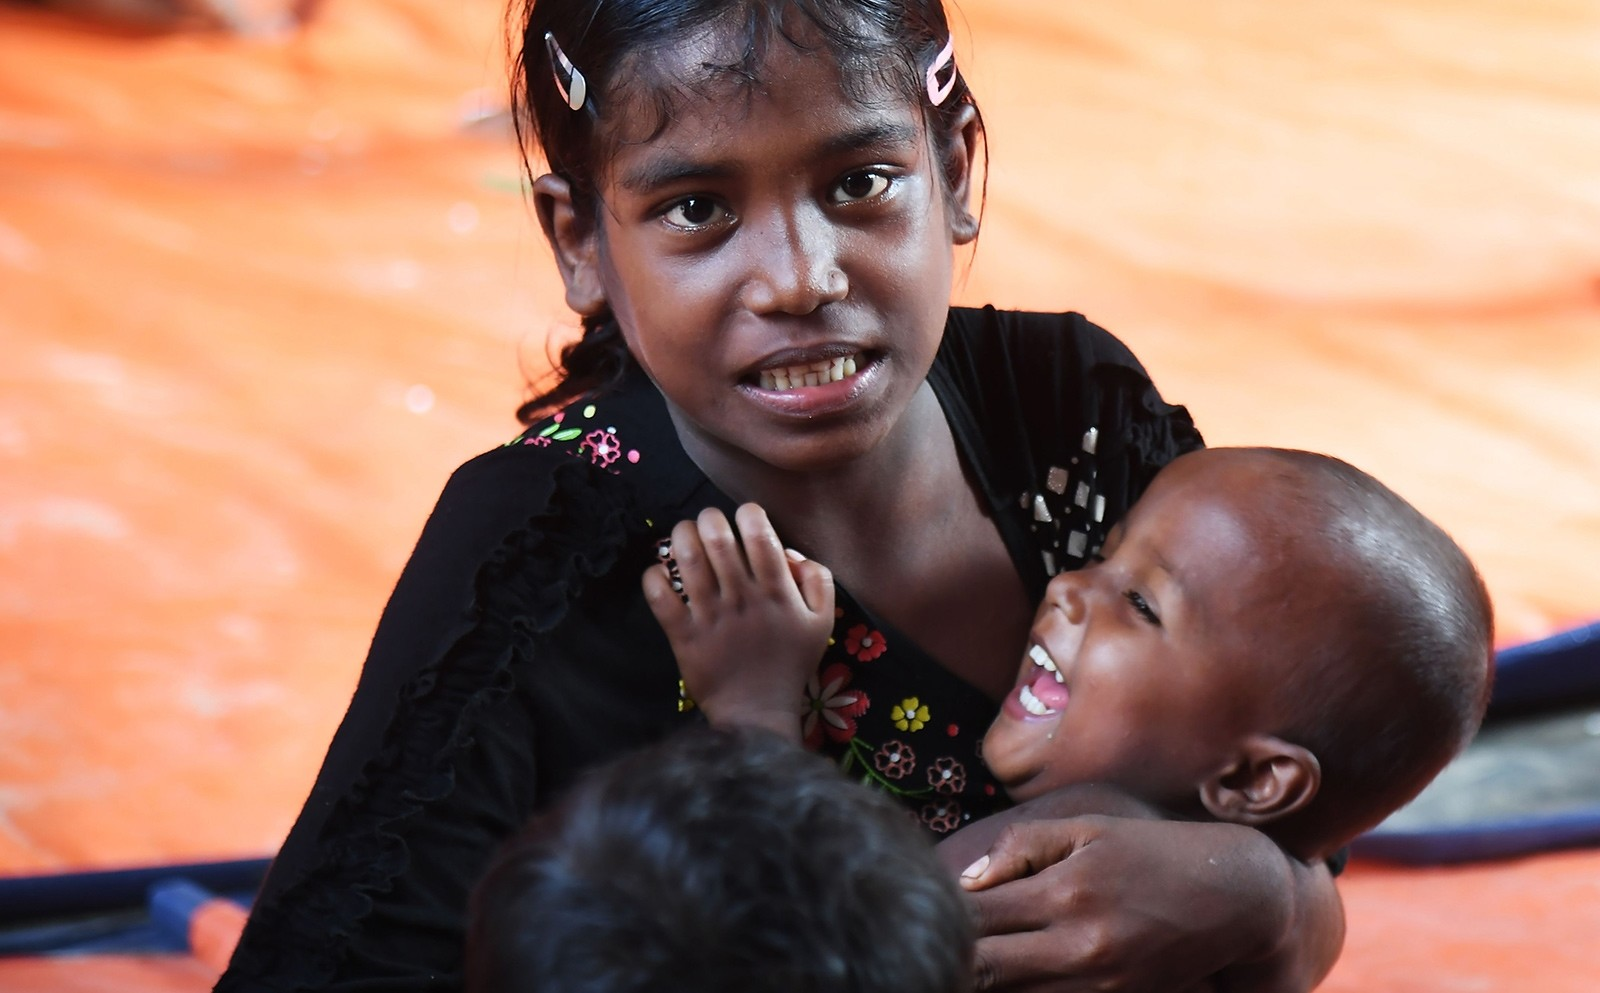 This picture taken November 4, 2017 shows ten-year-old Rohingya refugee Tahera Begum playing with her sister as she attends an informal school at the Balukhali refugee camp in Bangladesh's Ukhia district (AFP Photo)